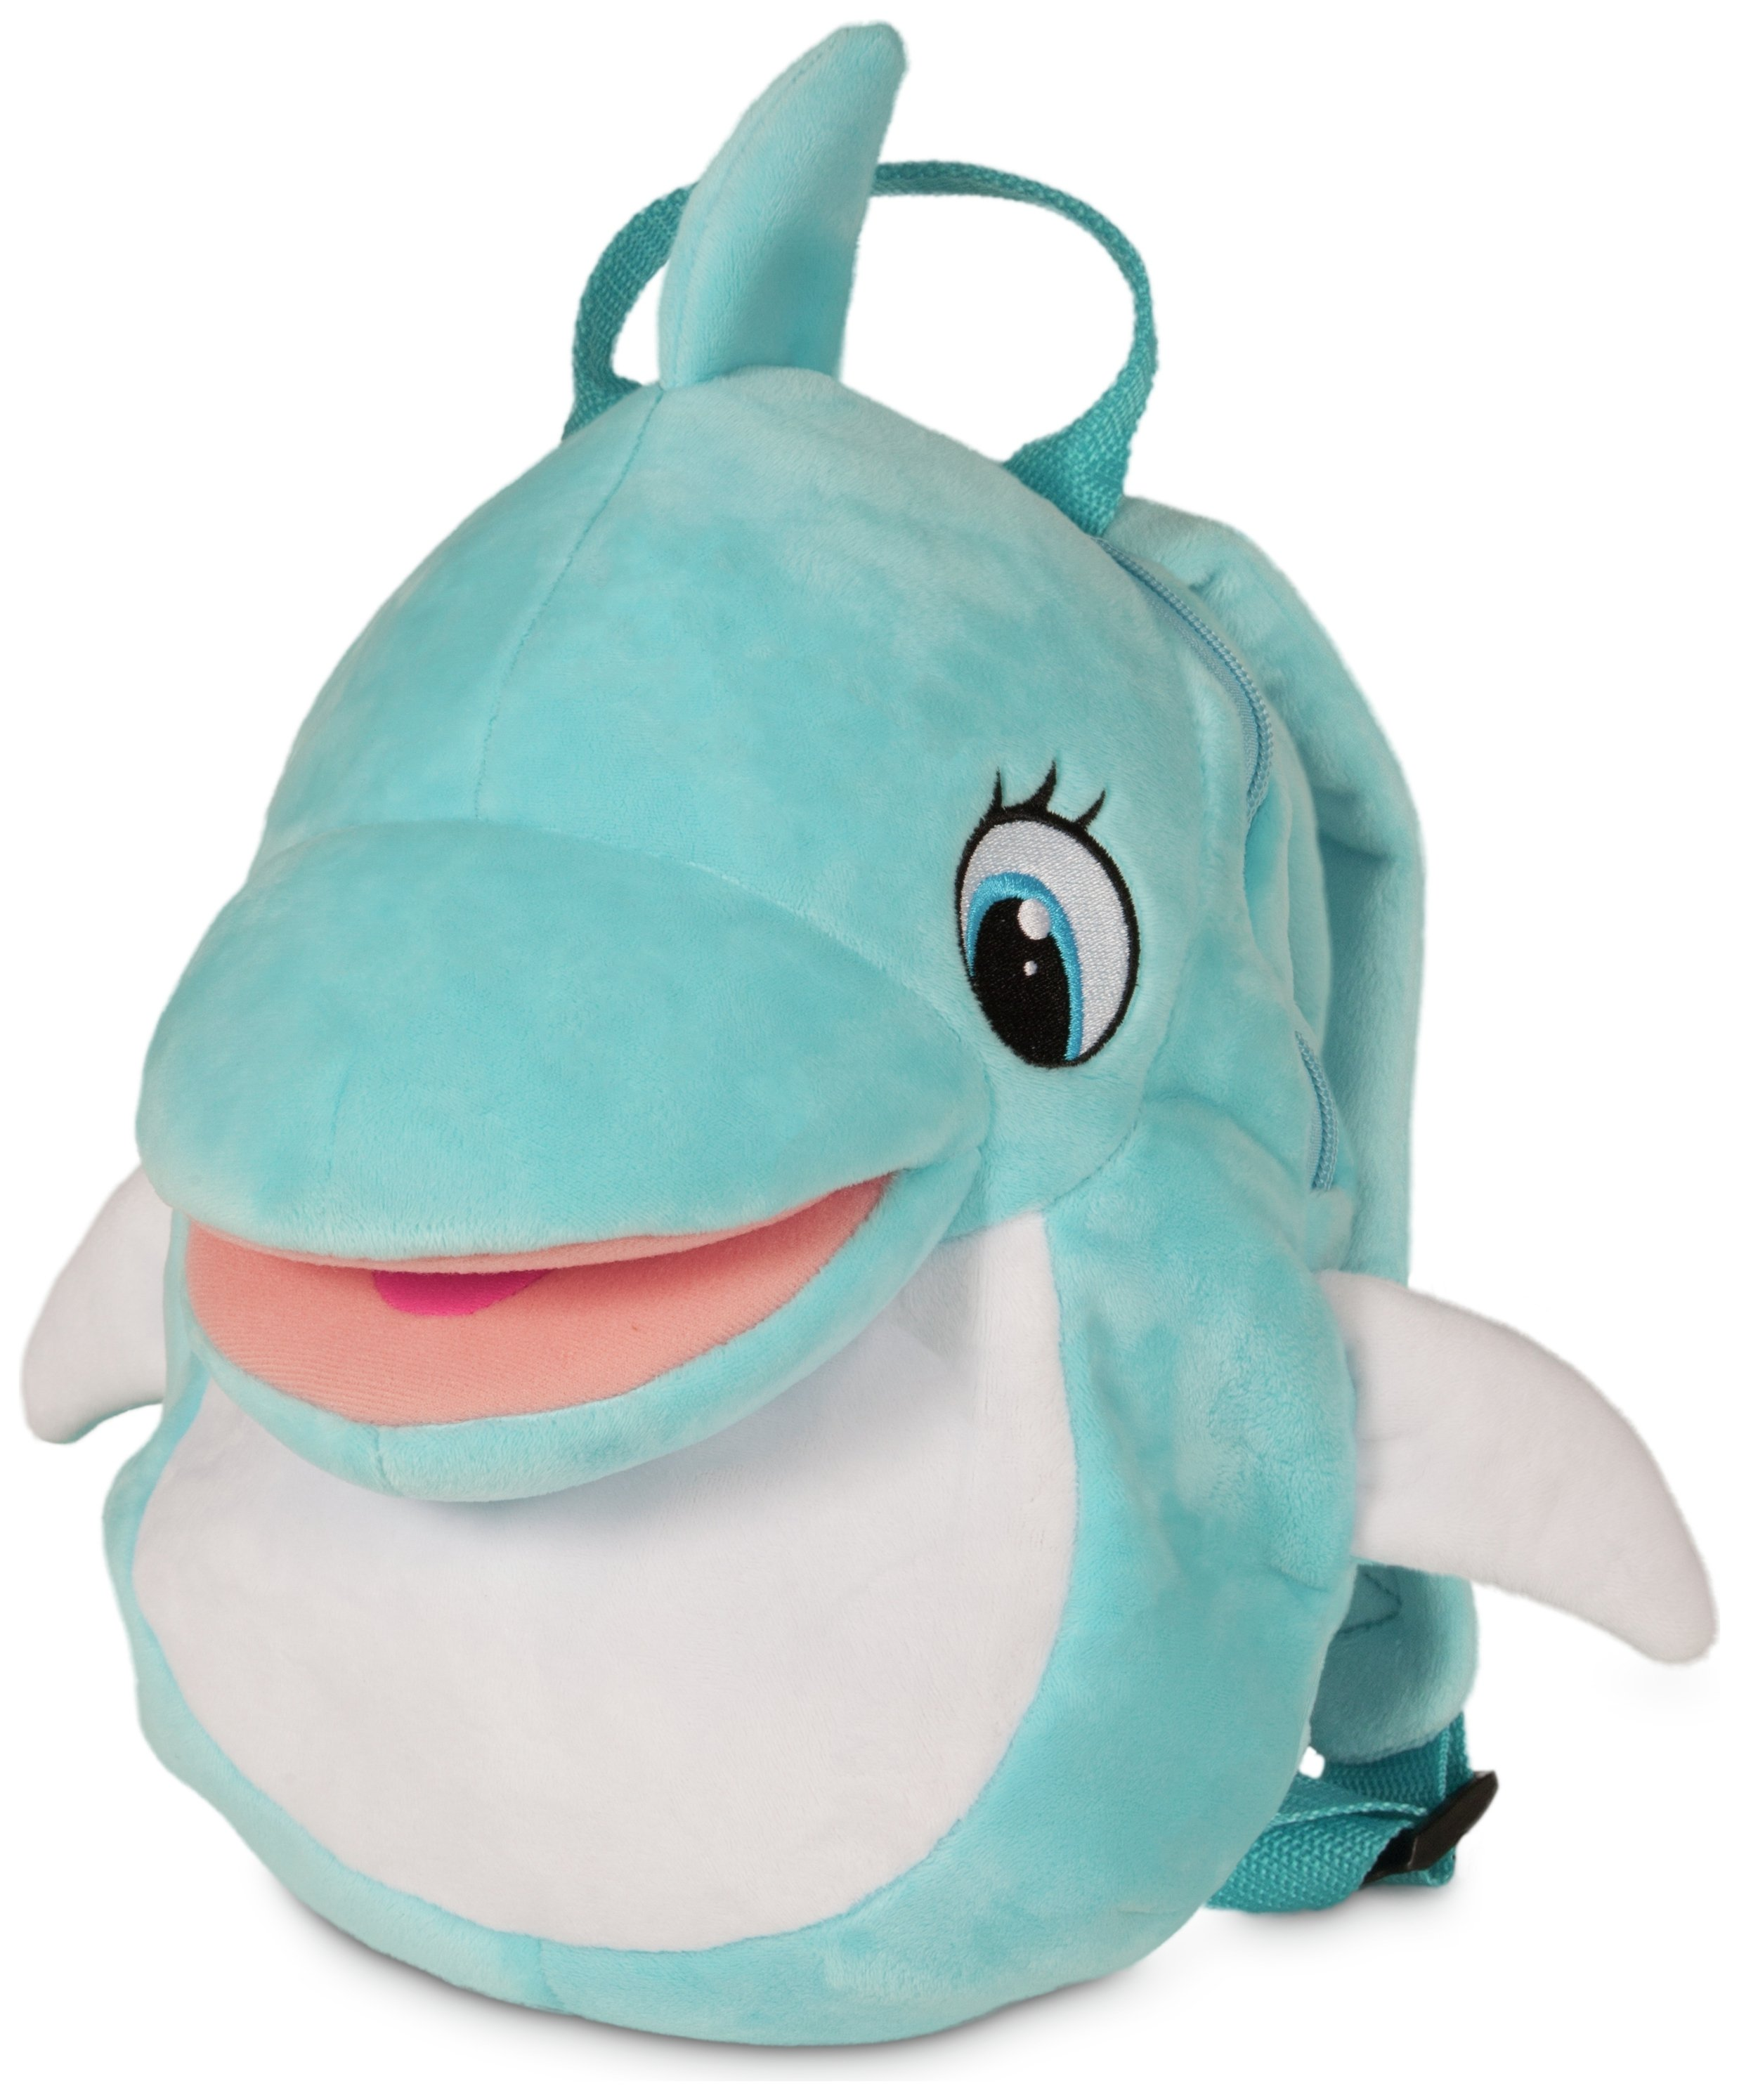 Image of Club Petz Blu Blu Musical Backpack.